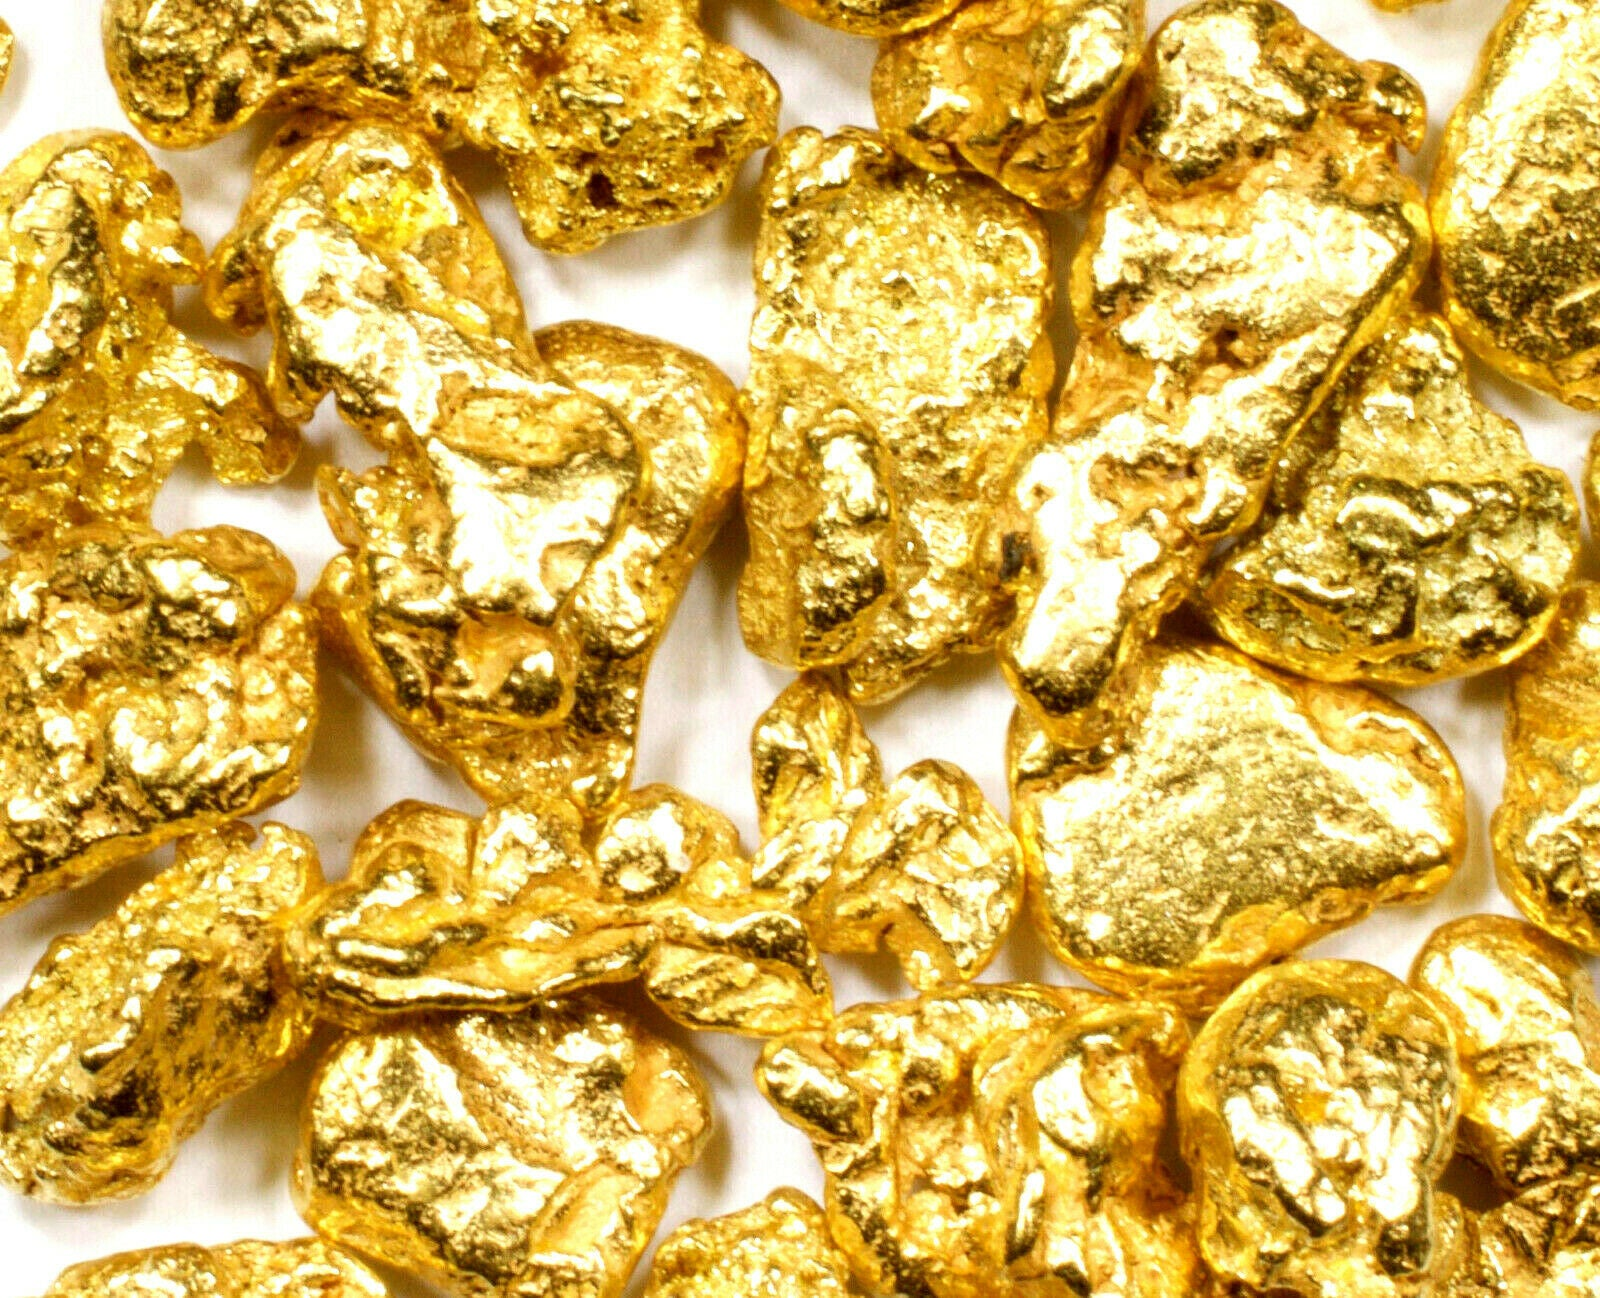 WHAT ARE NATURAL GOLD NUGGETS AND WHY INVESTING IN GOLD IS A GREAT OPTION